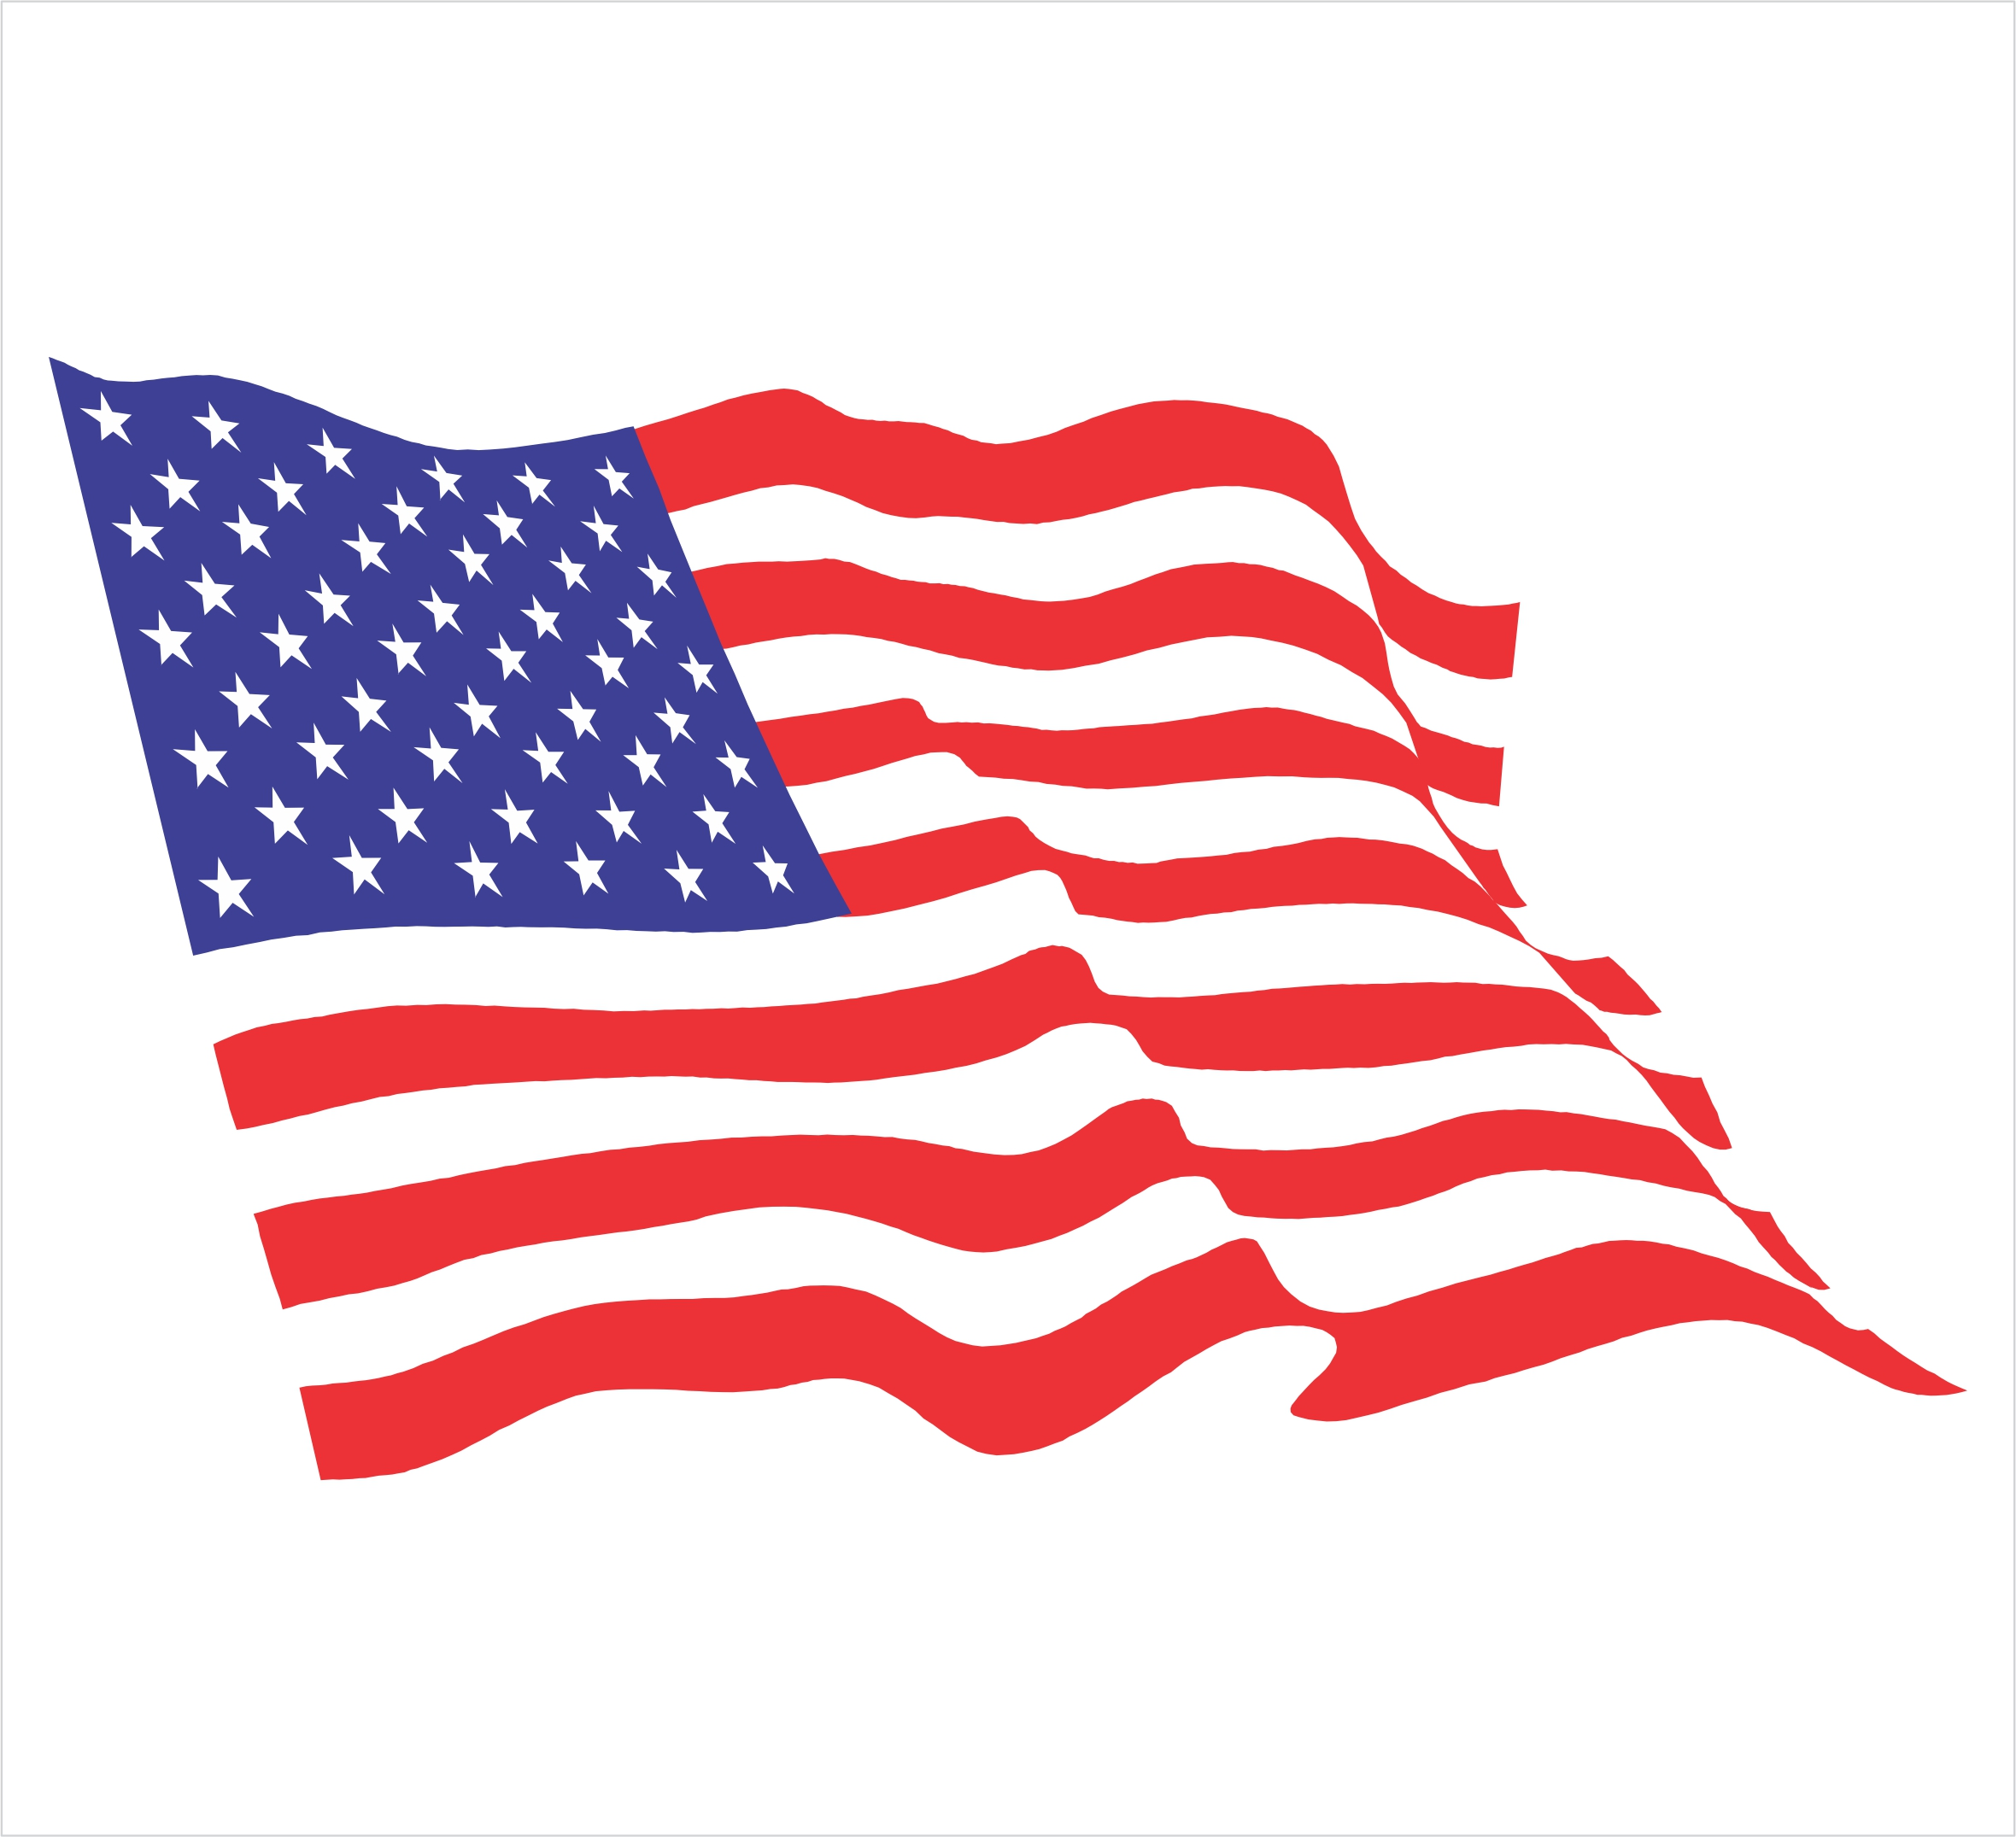 clip art of american flag animated - photo #34